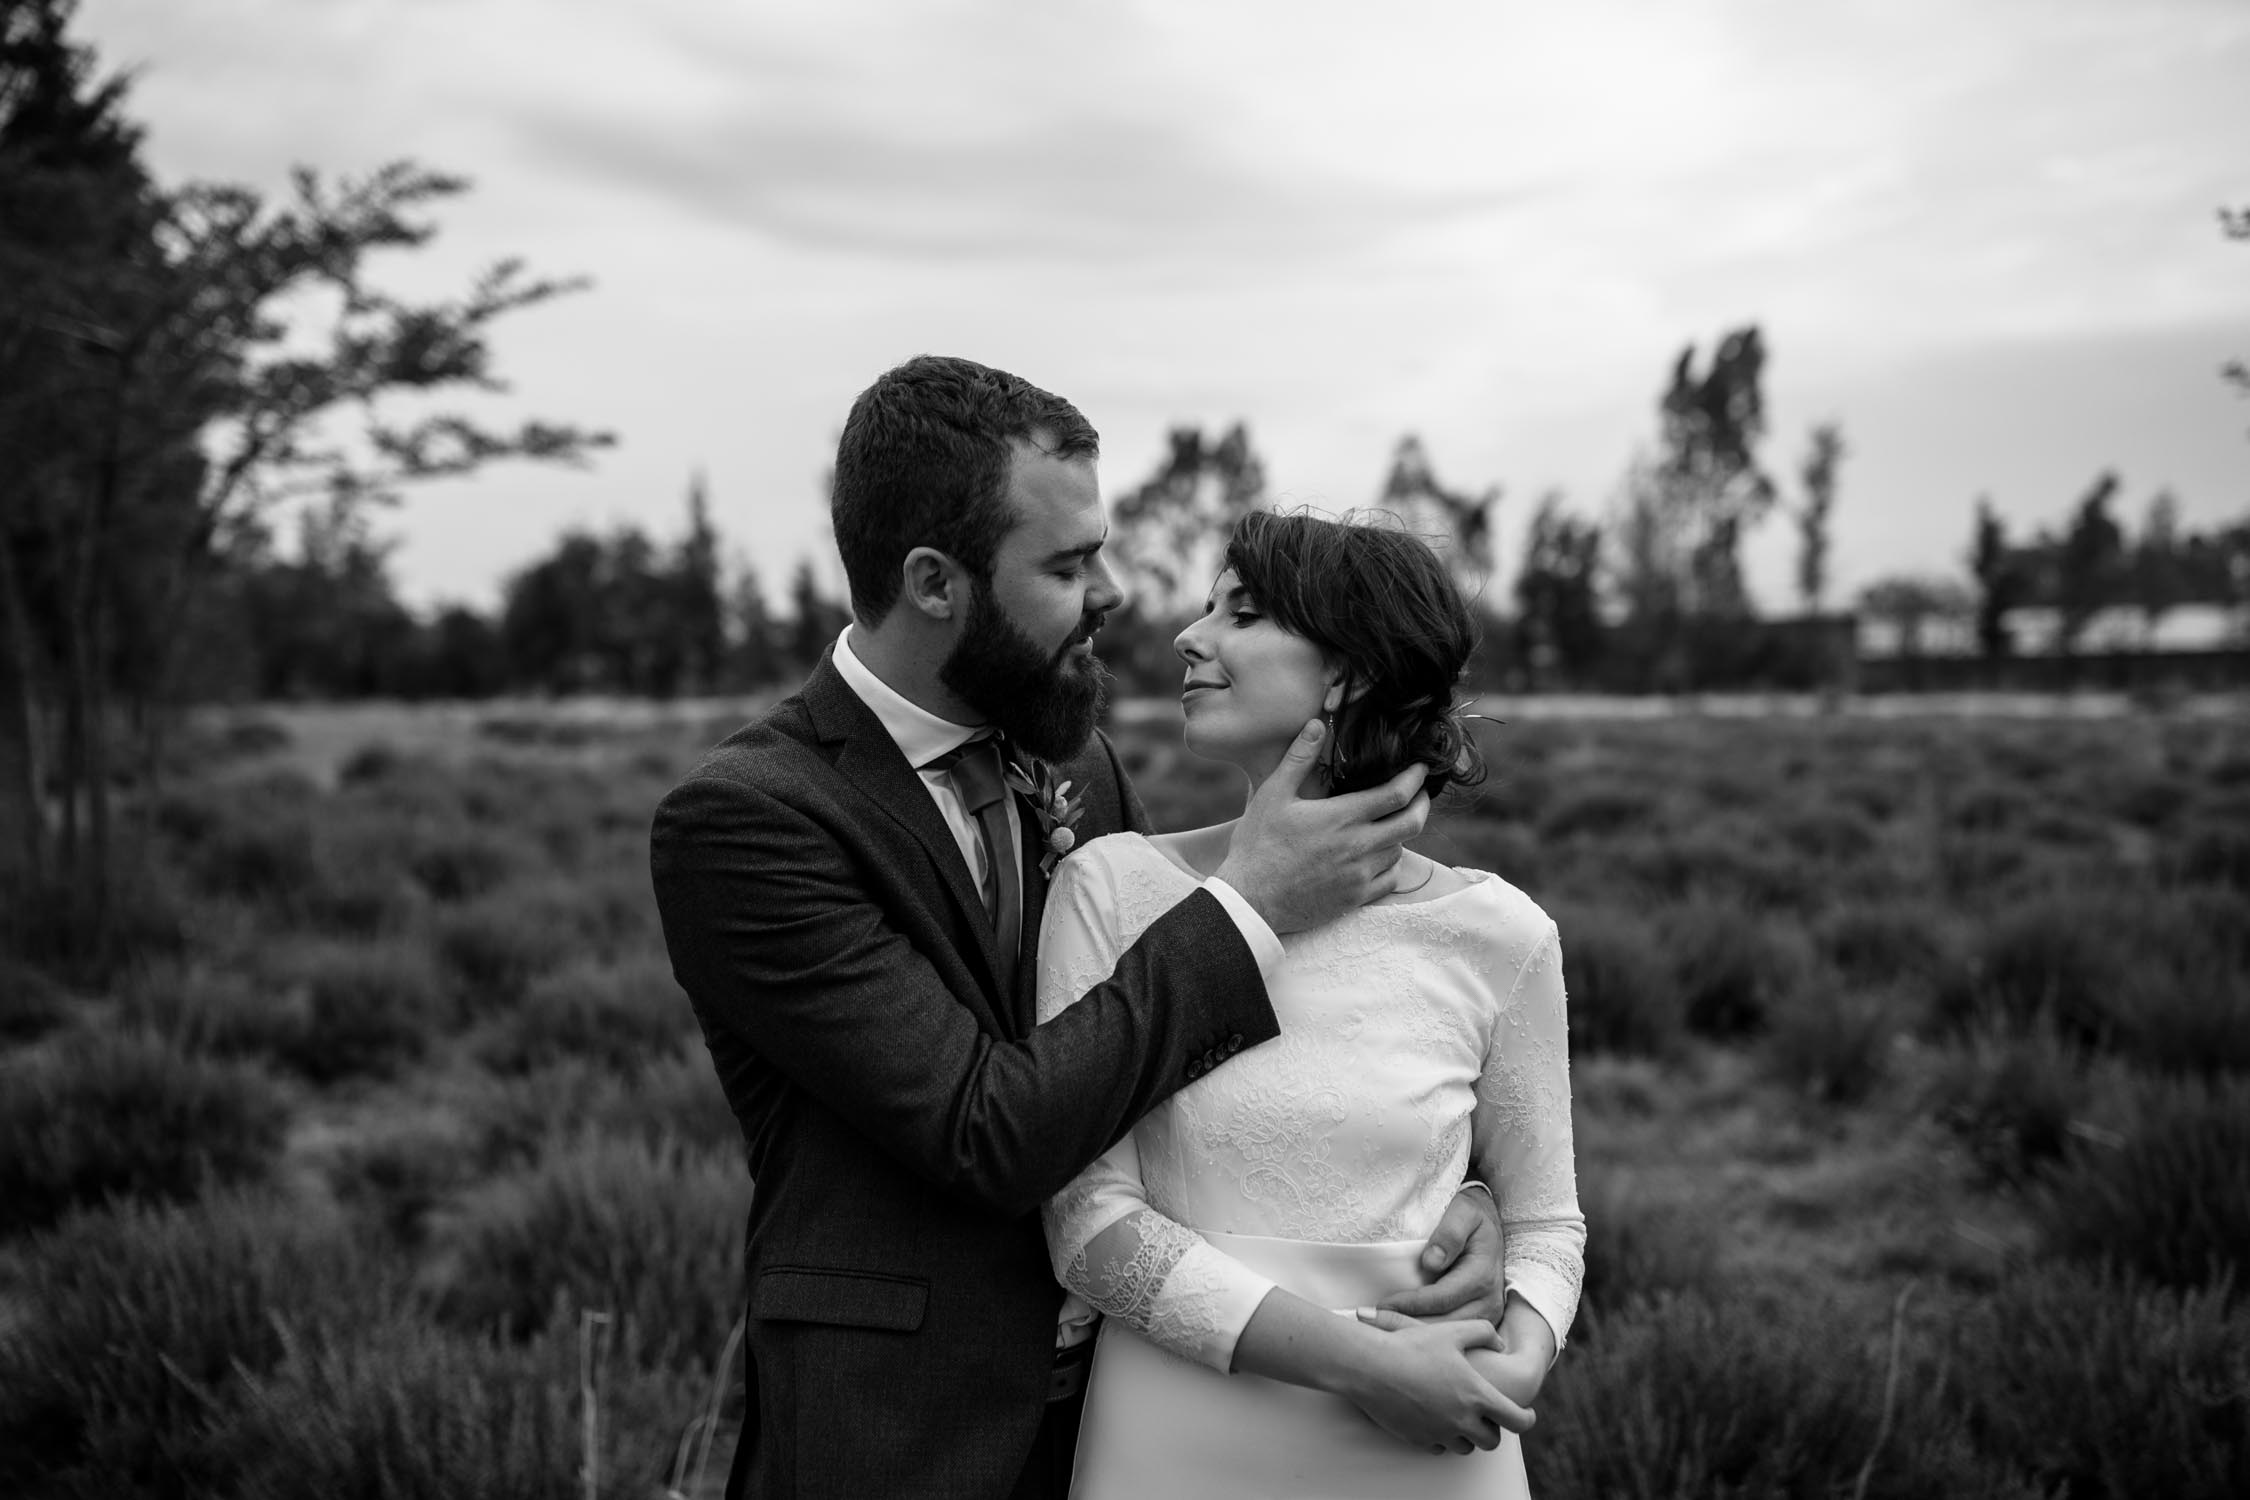 Newlyweds look into each other's eyes and share a quiet moment in rosemary field